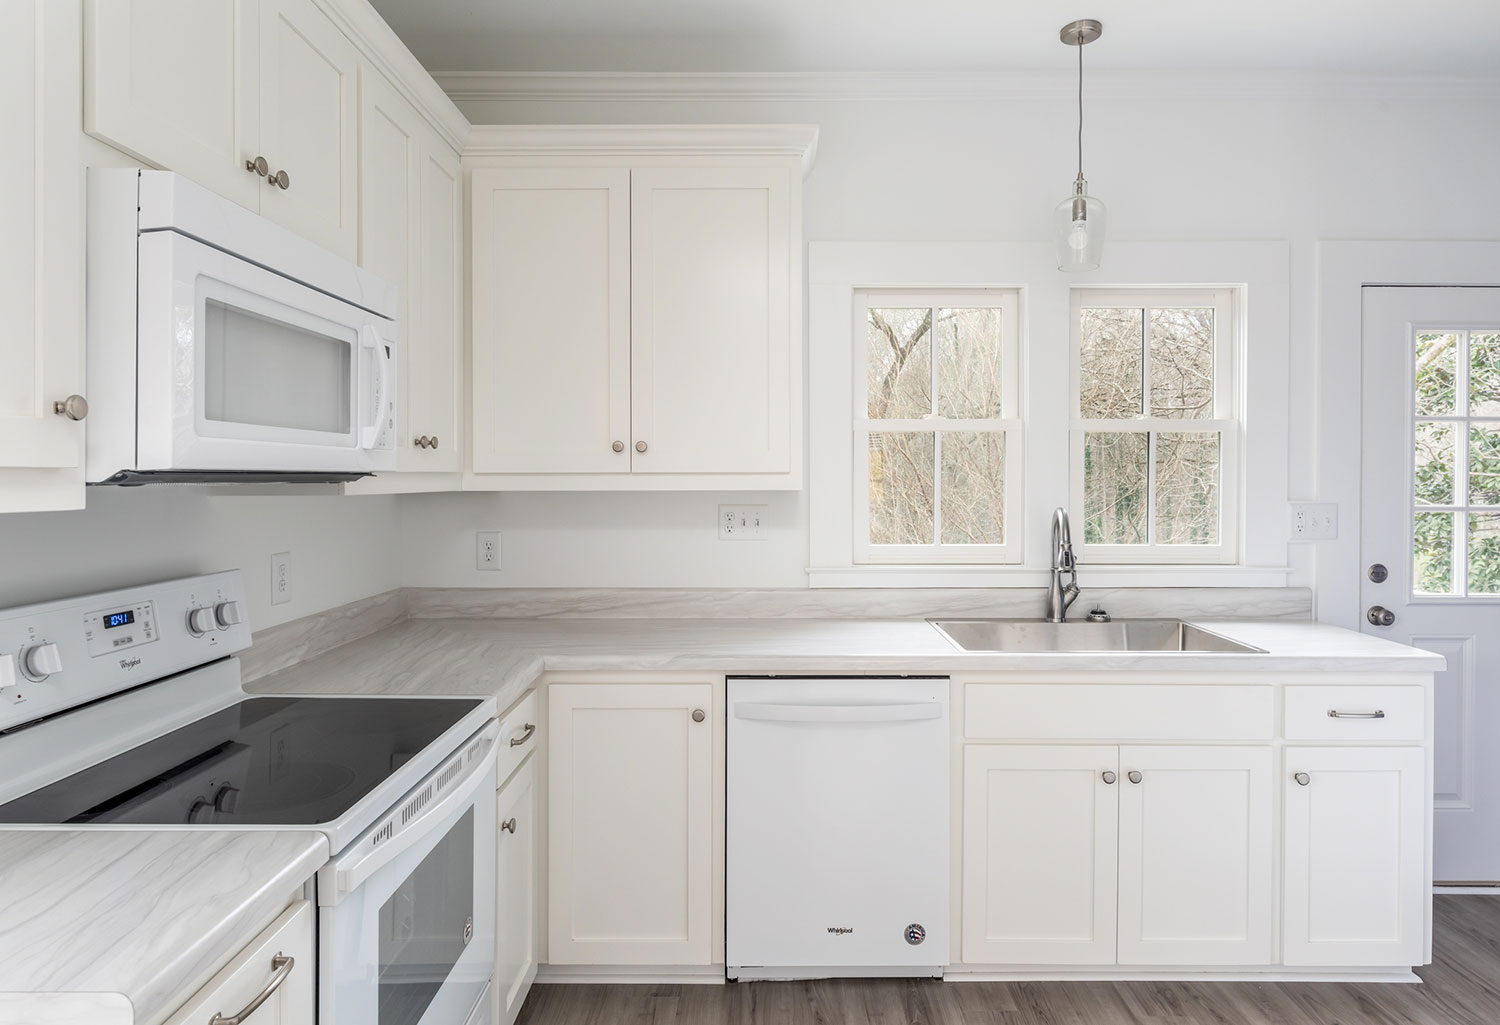 kitchen-2-low-res.jpg